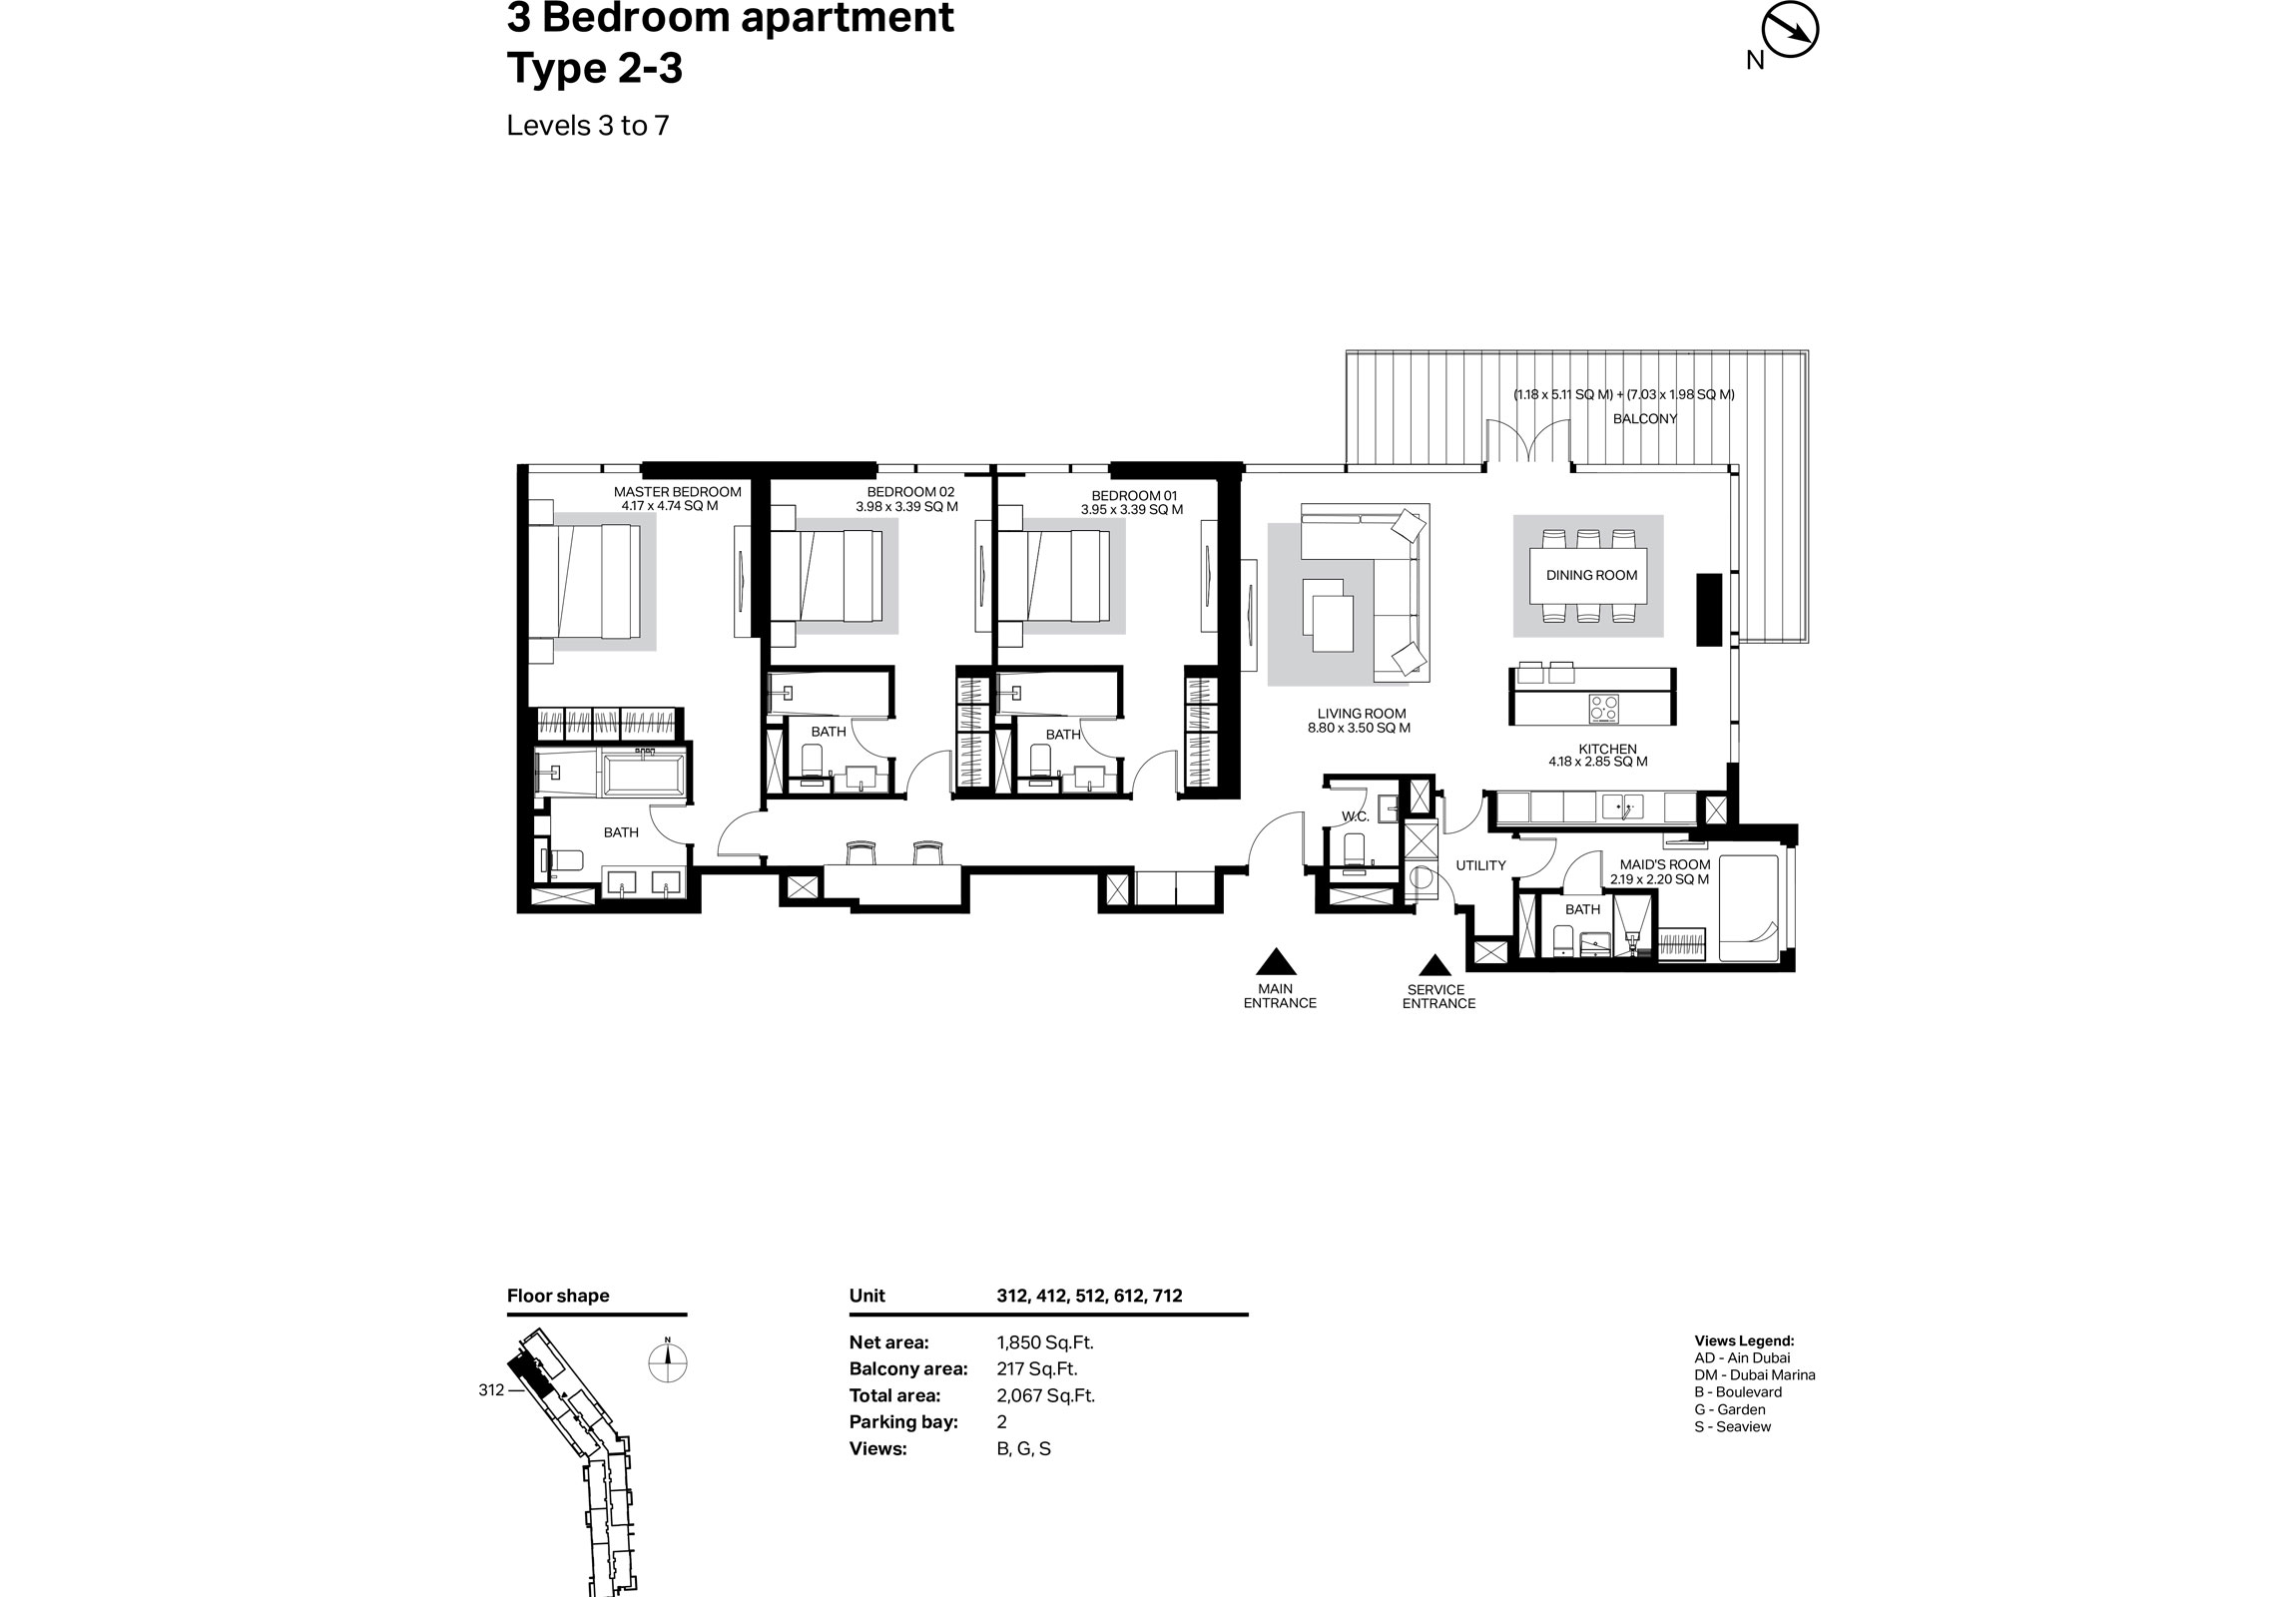 Building 2 - 3 Bedroom Type 2-3 Level 3 To 7 Size 2067    sq. ft.